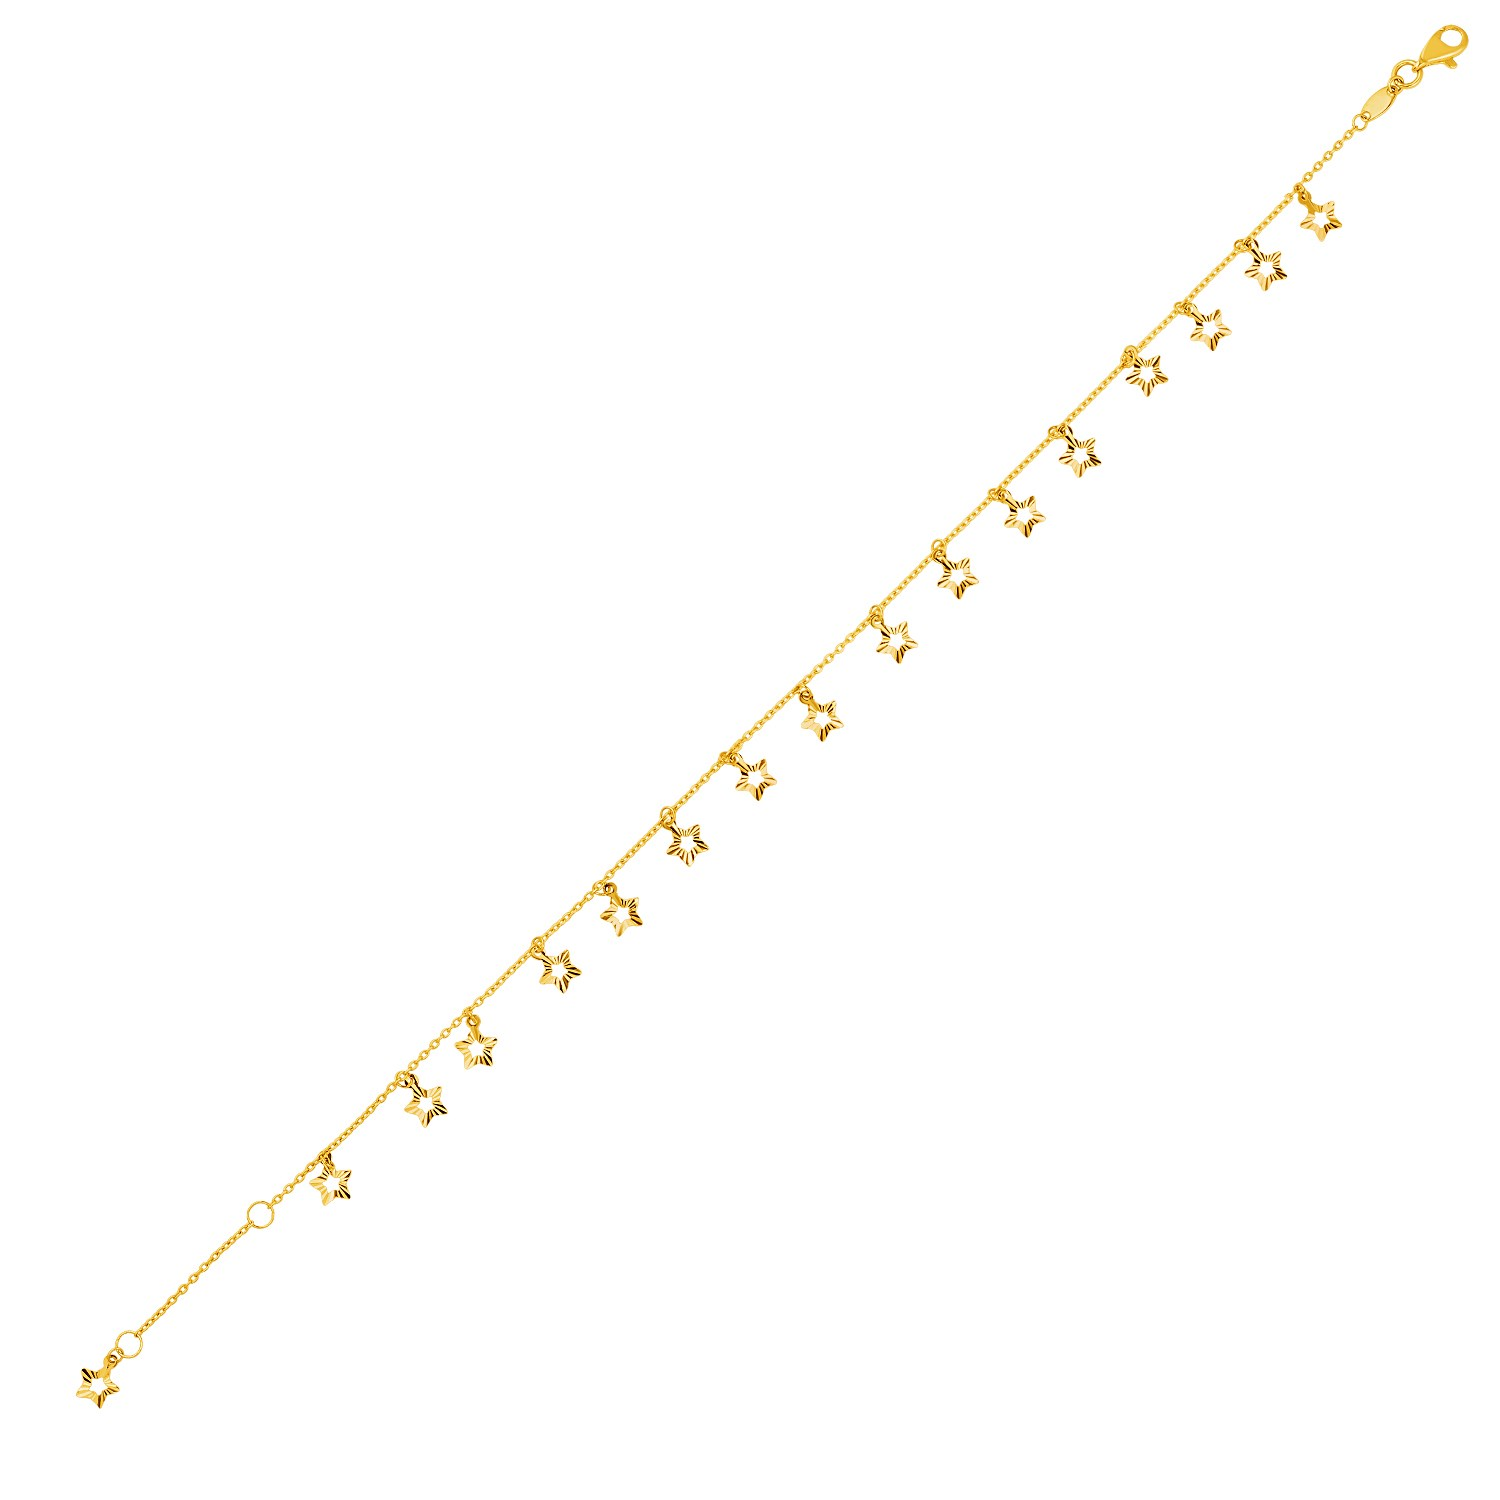 diamond jewelry bracelet cut rope anklet dp and men solid gold for women yellow chain inch com amazon